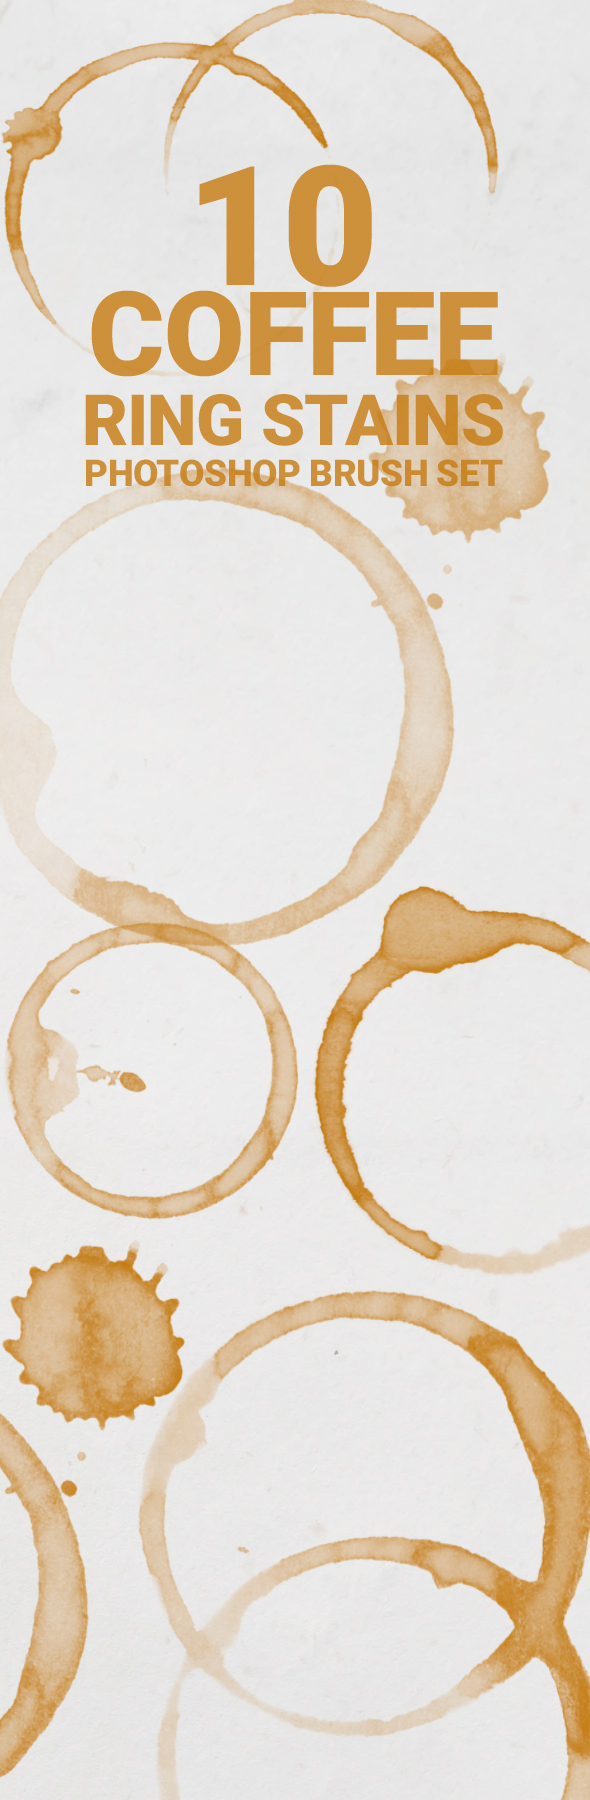 coffee ring stains 10 Coffee ring stains Photoshop brush set